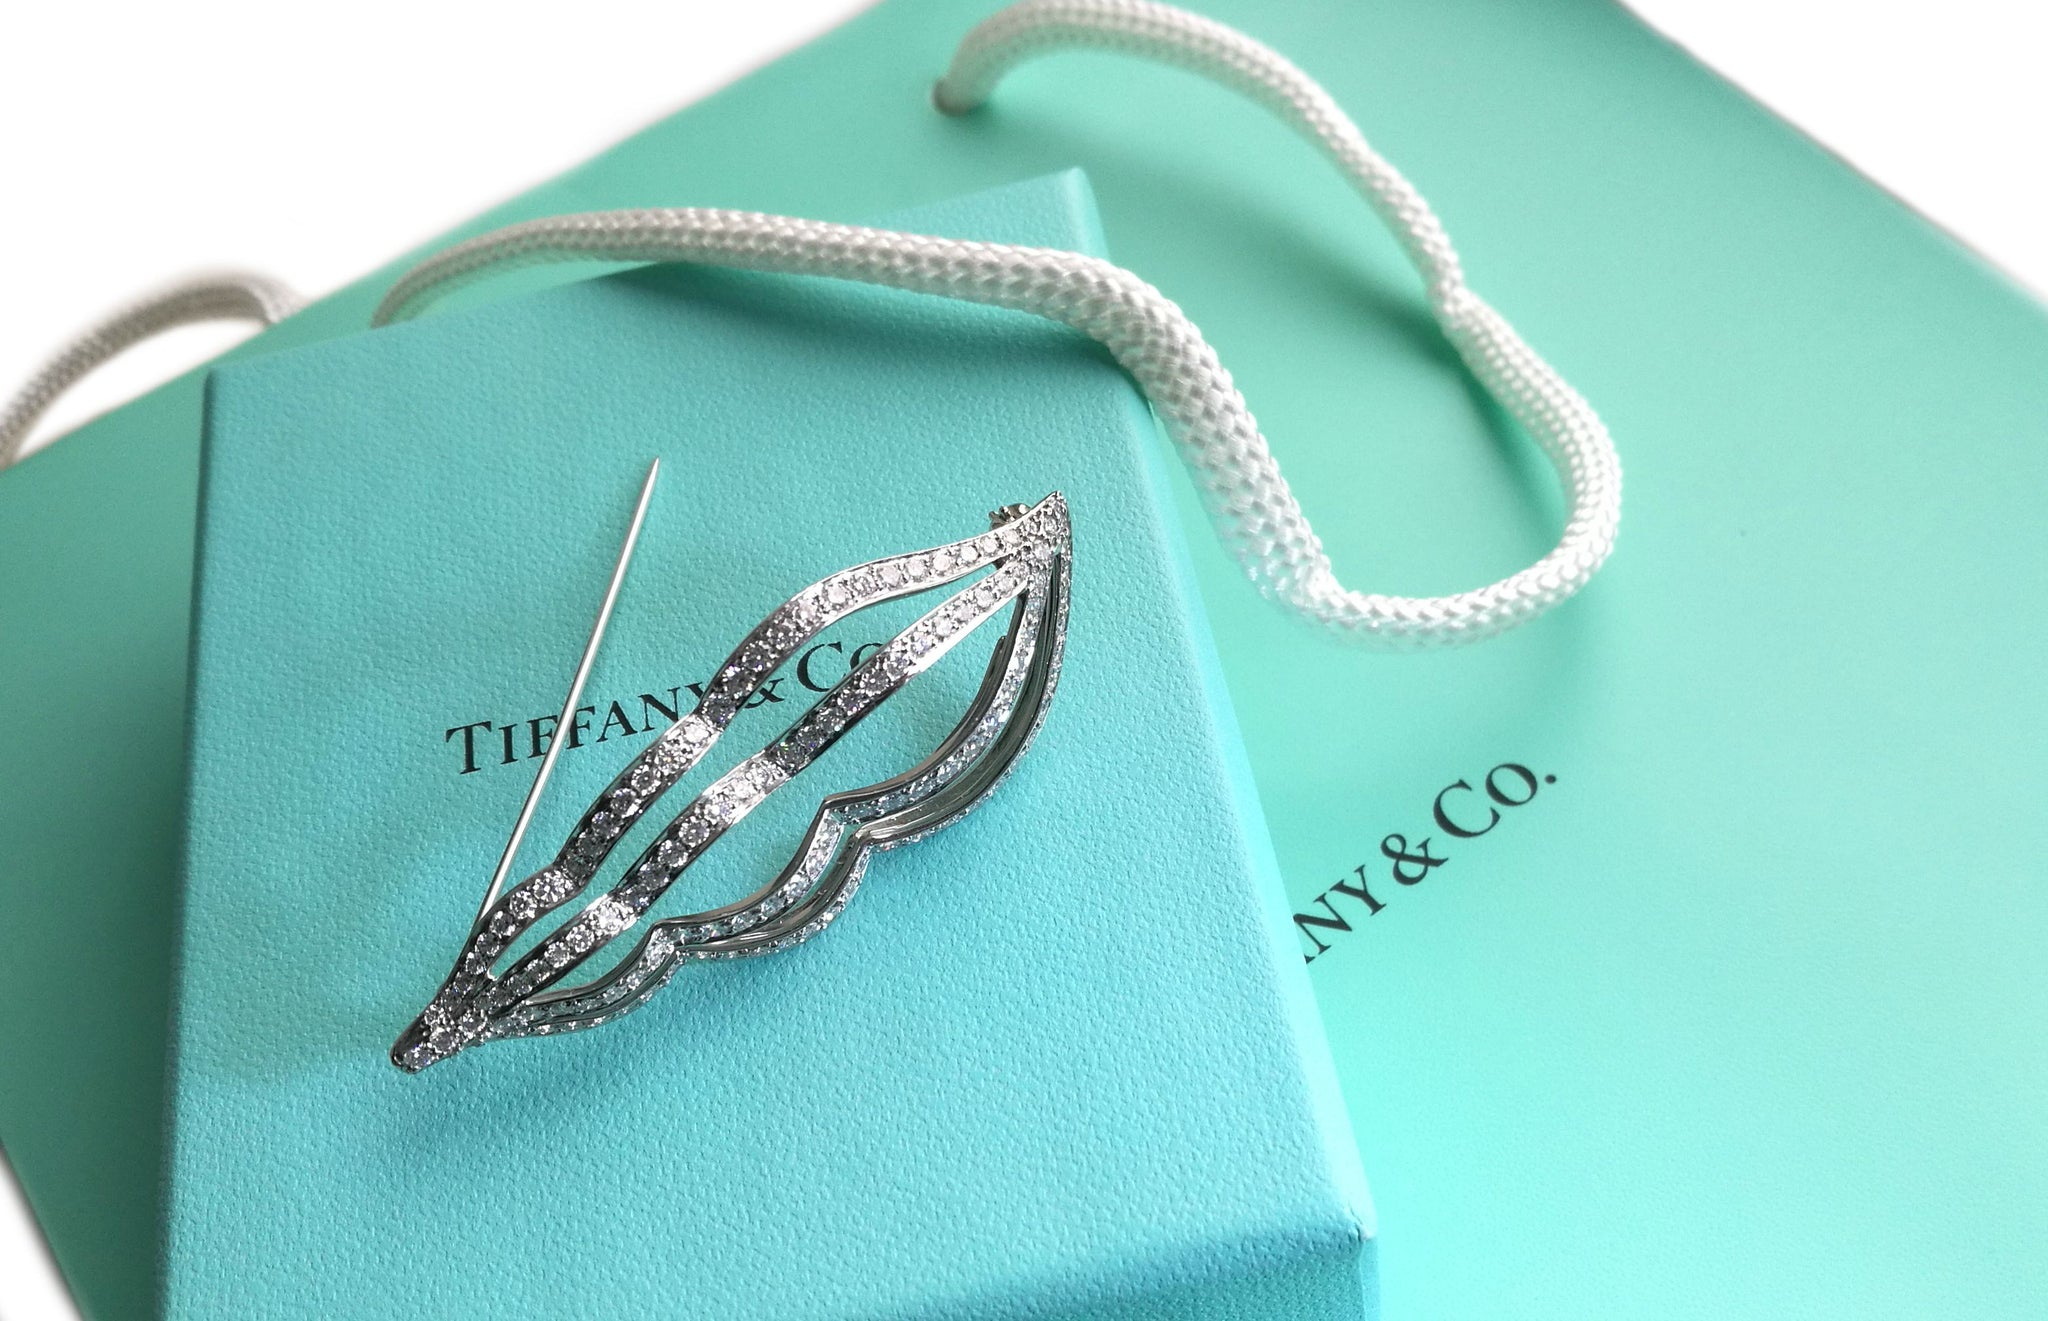 Tiffany & Co 2ct Diamond Platinum Whelk Sea Shell Brooch Box